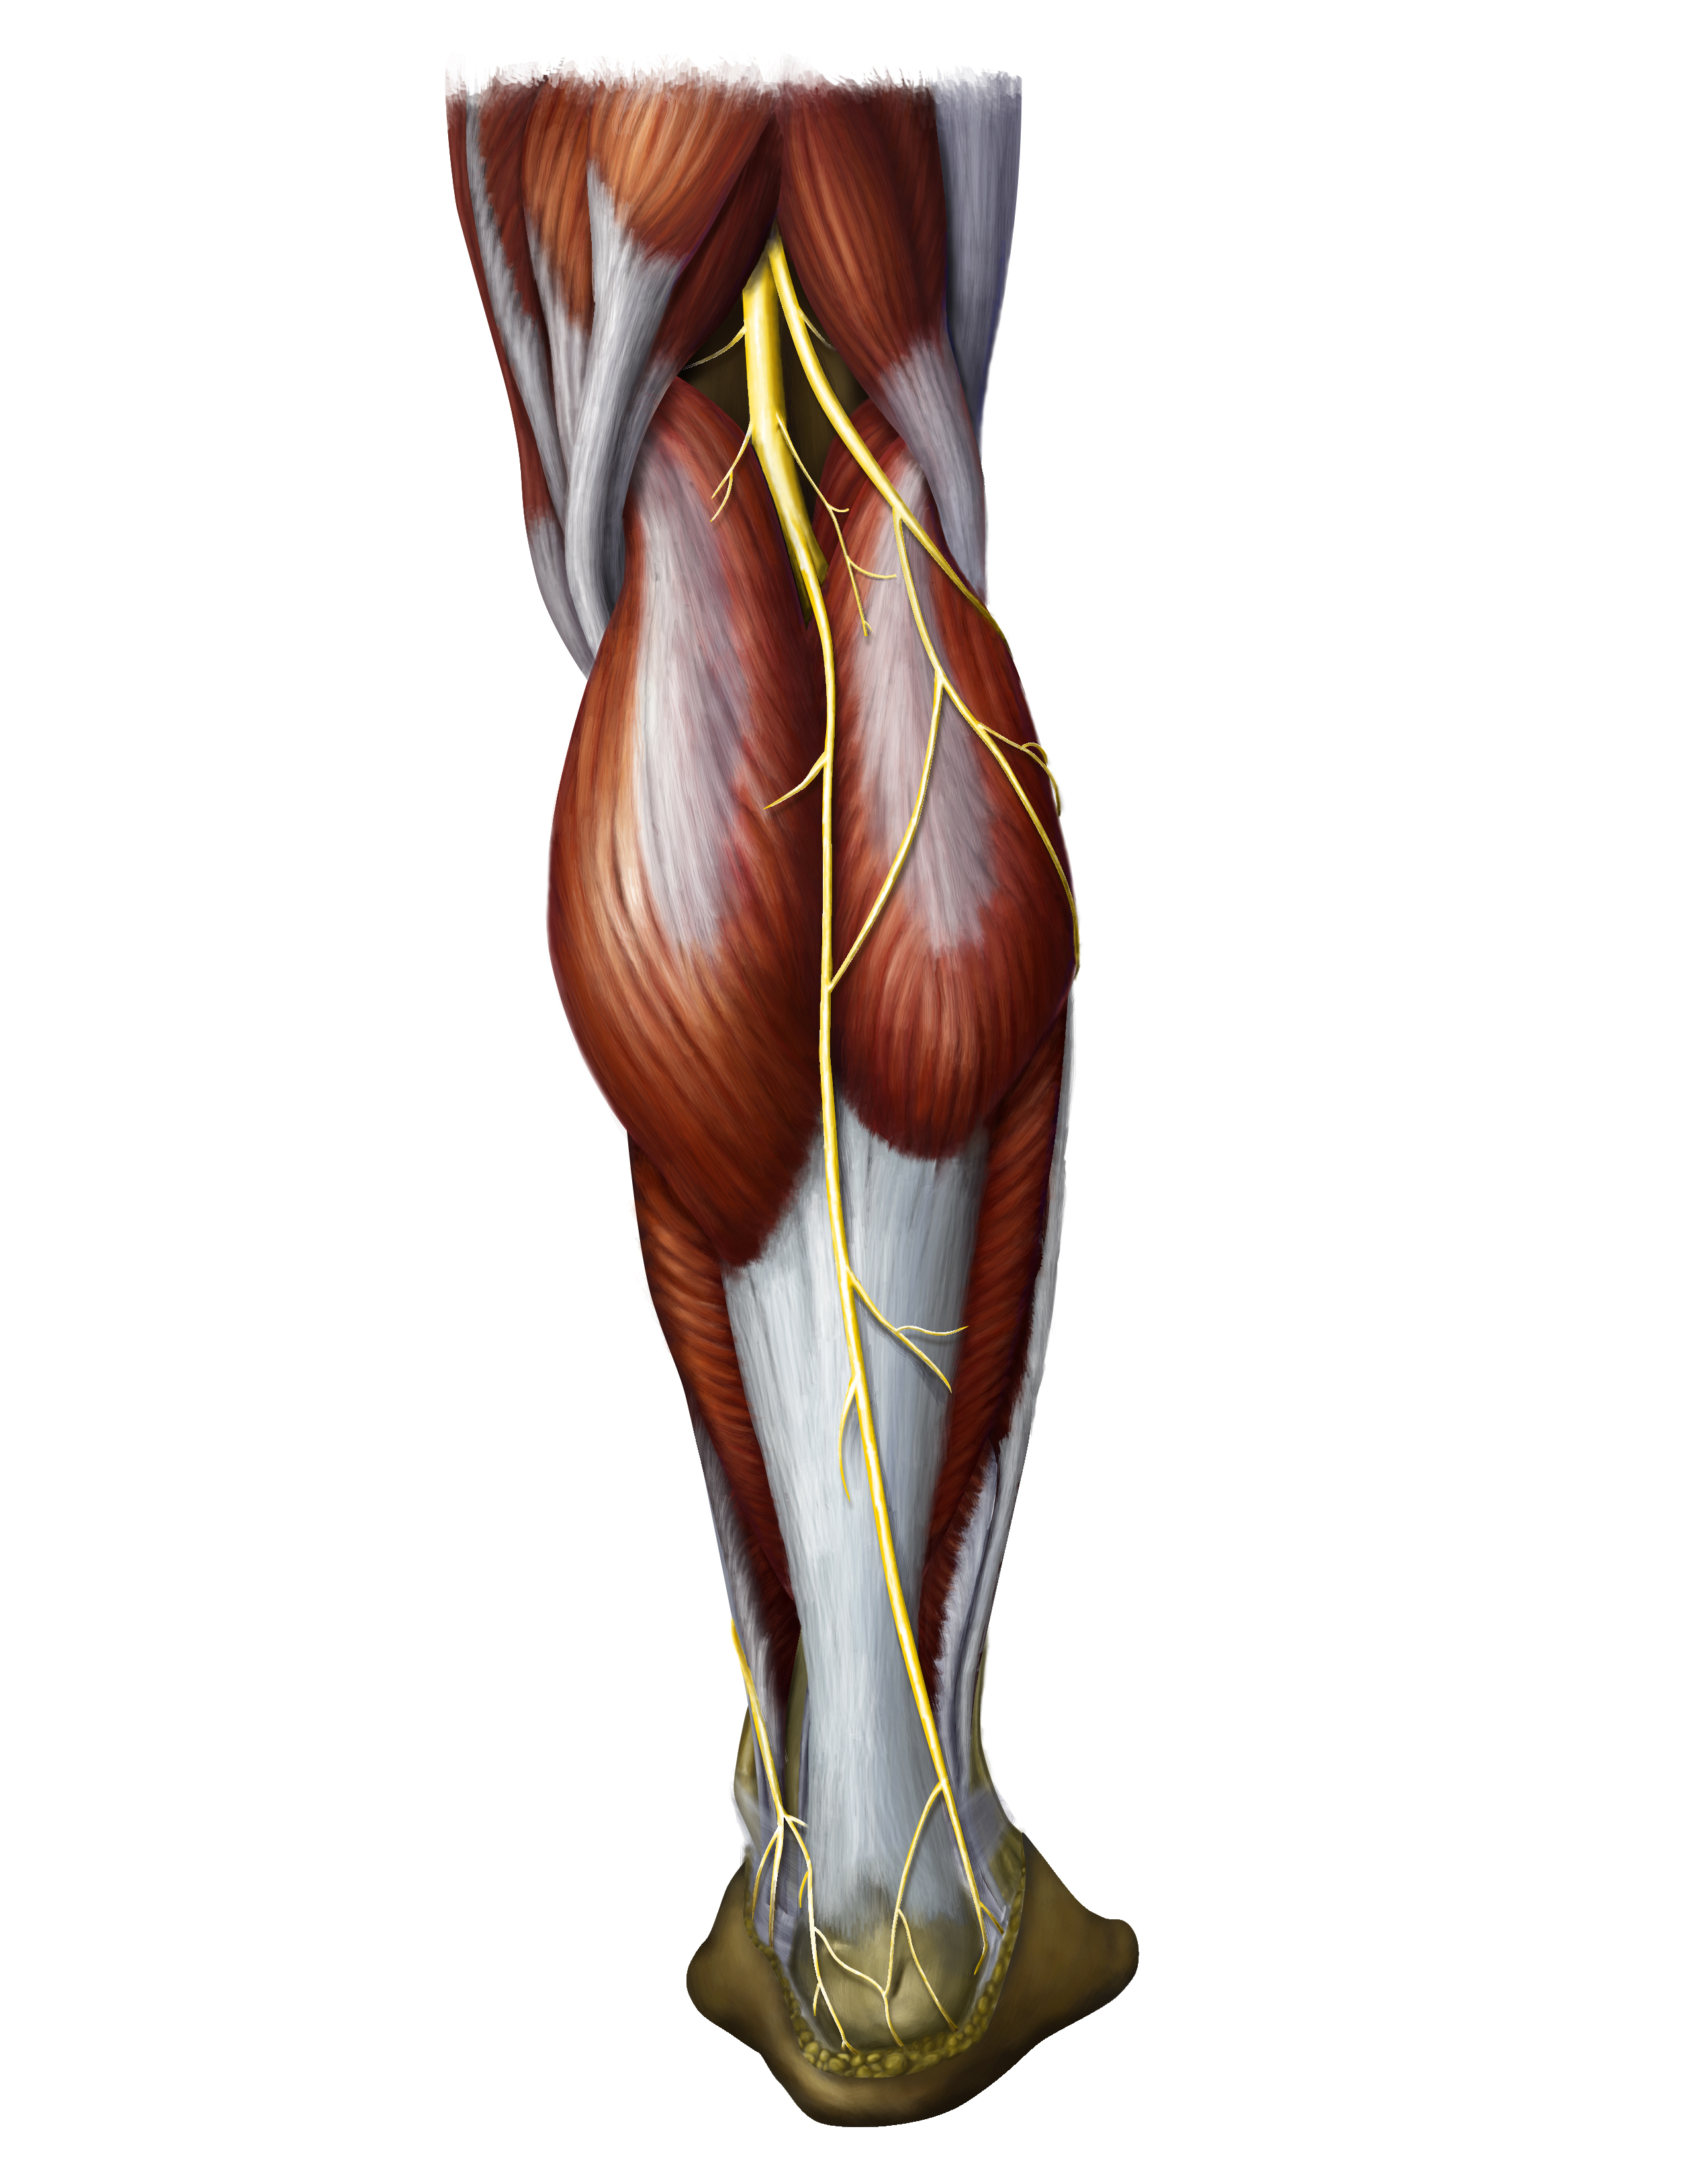 Muscles nerves of lower leg by priapism4art on deviantart muscles nerves of lower leg by priapism4art ccuart Image collections